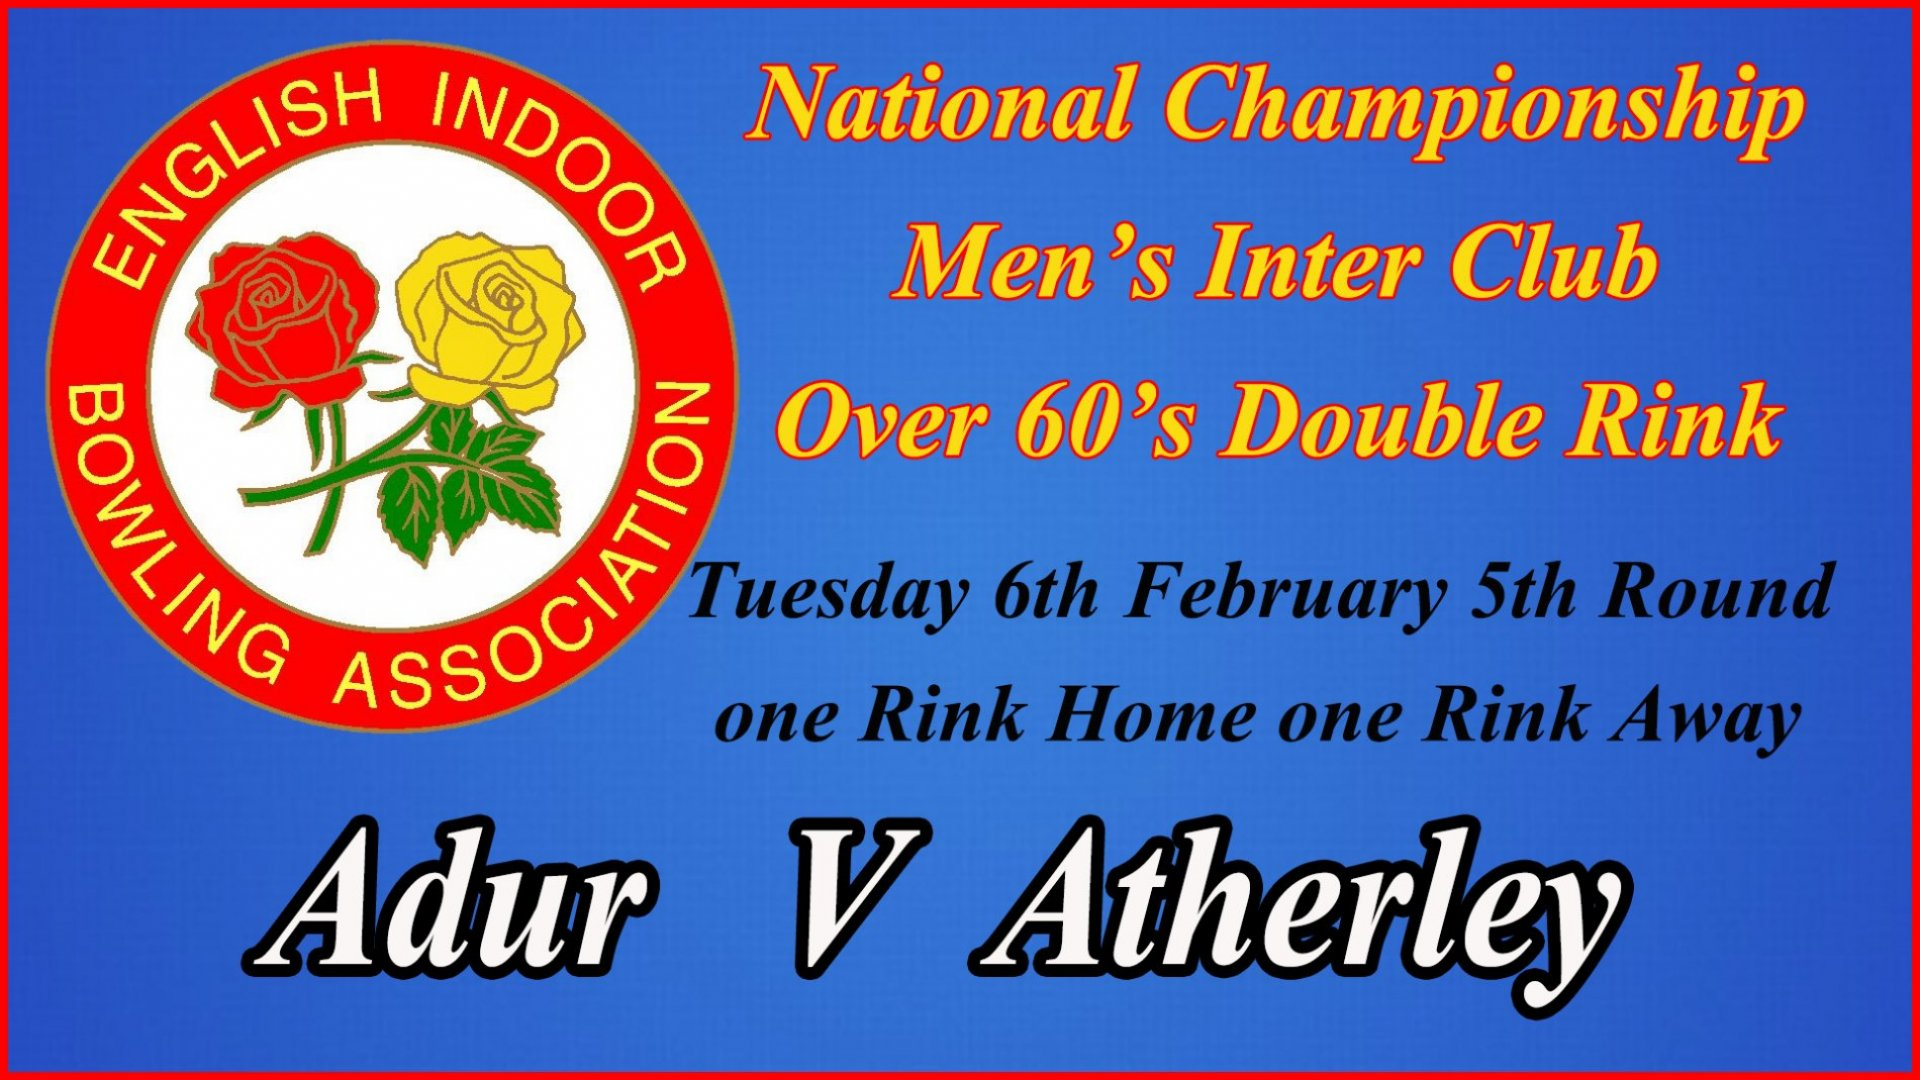 National Championship - Men's Over 60's Double Rink - Last 16 - Adur V Atherley (6.2.18)